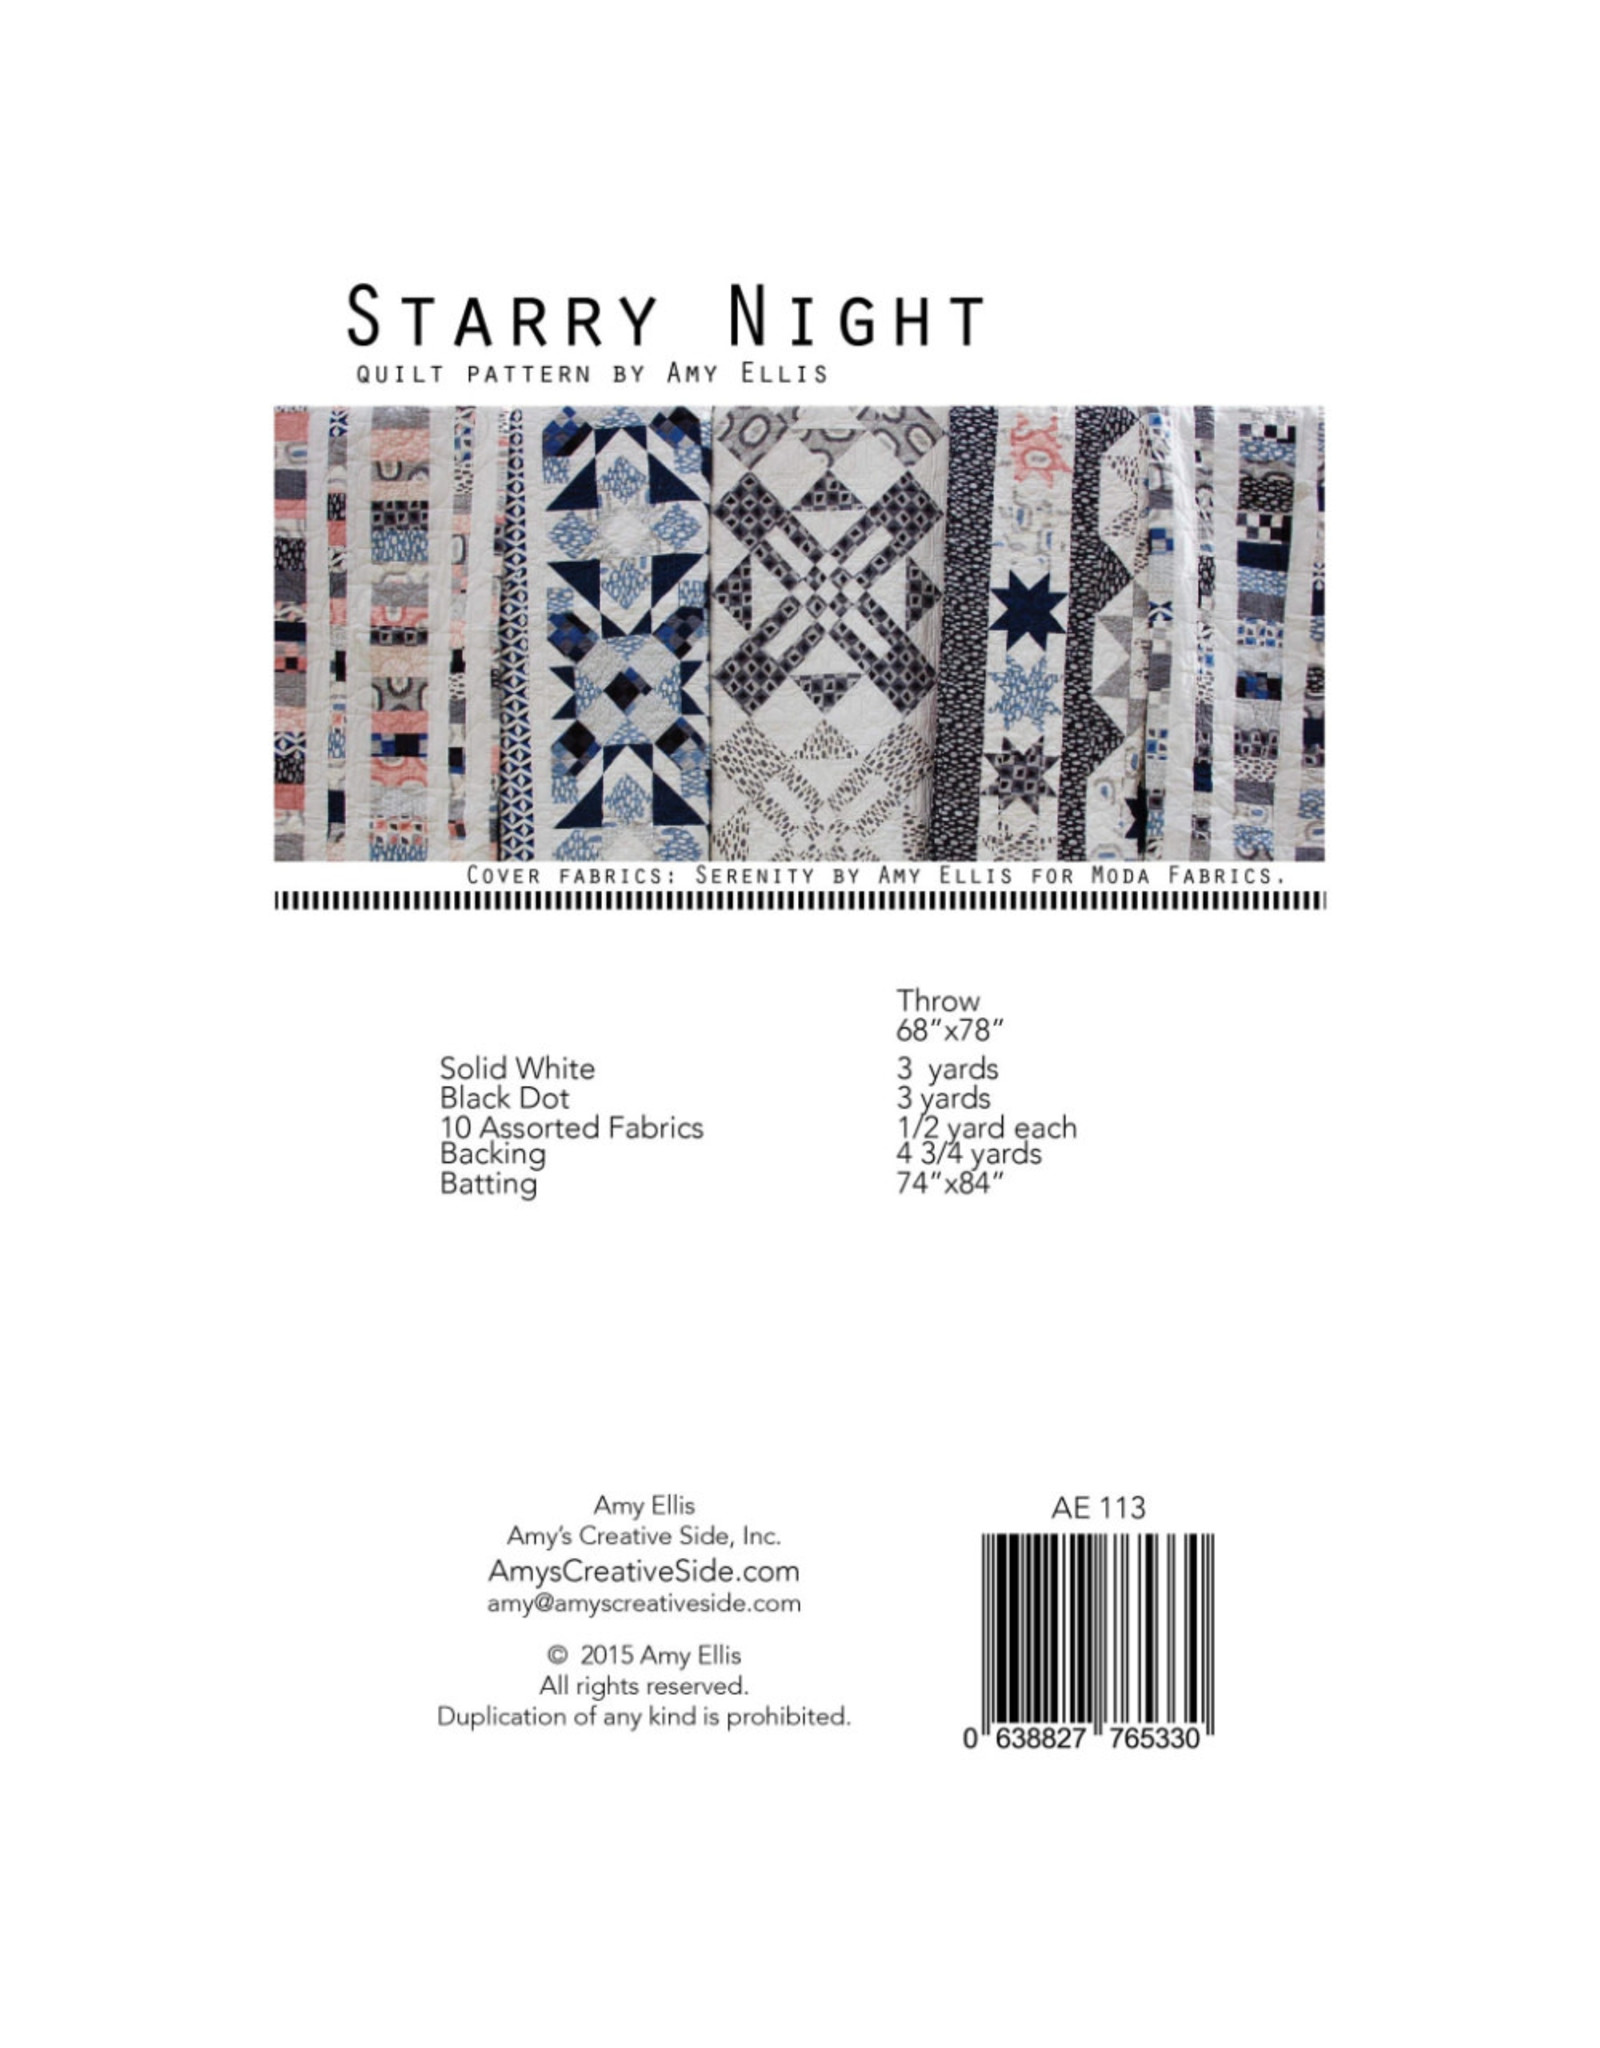 Amy's Creative Side Starry Night Quilt Pattern